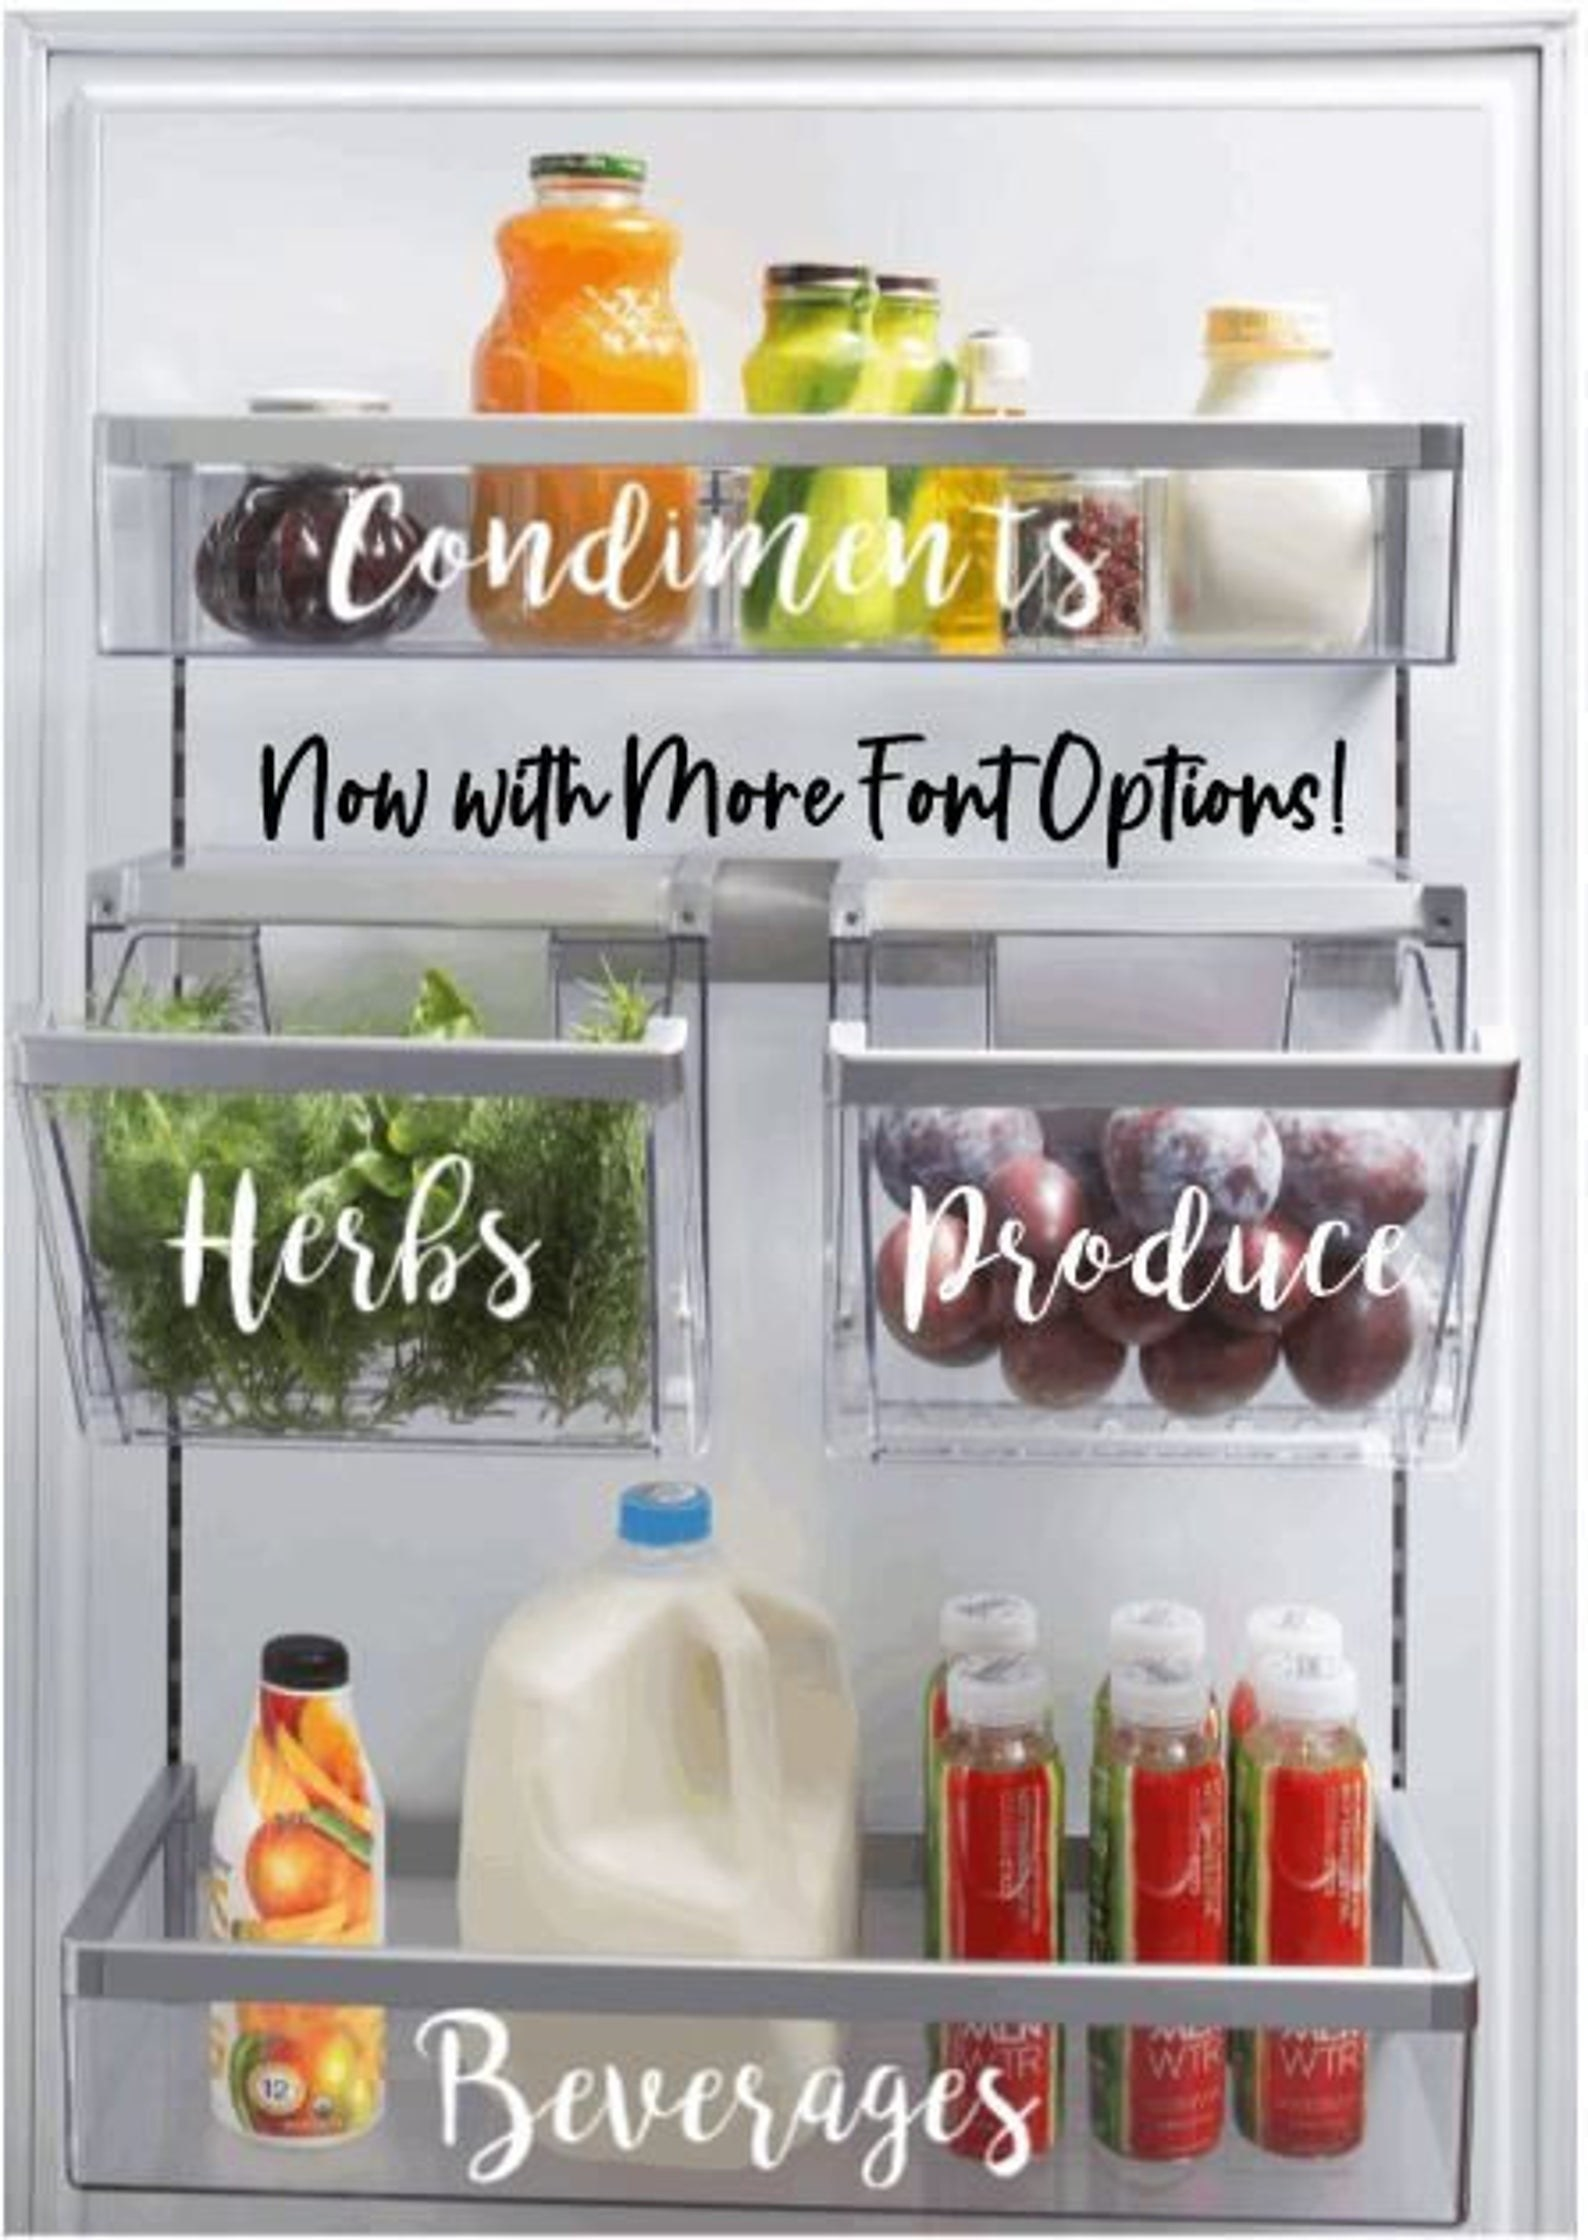 A set of labels in white font on fridge drawers for produce, herbs, etc